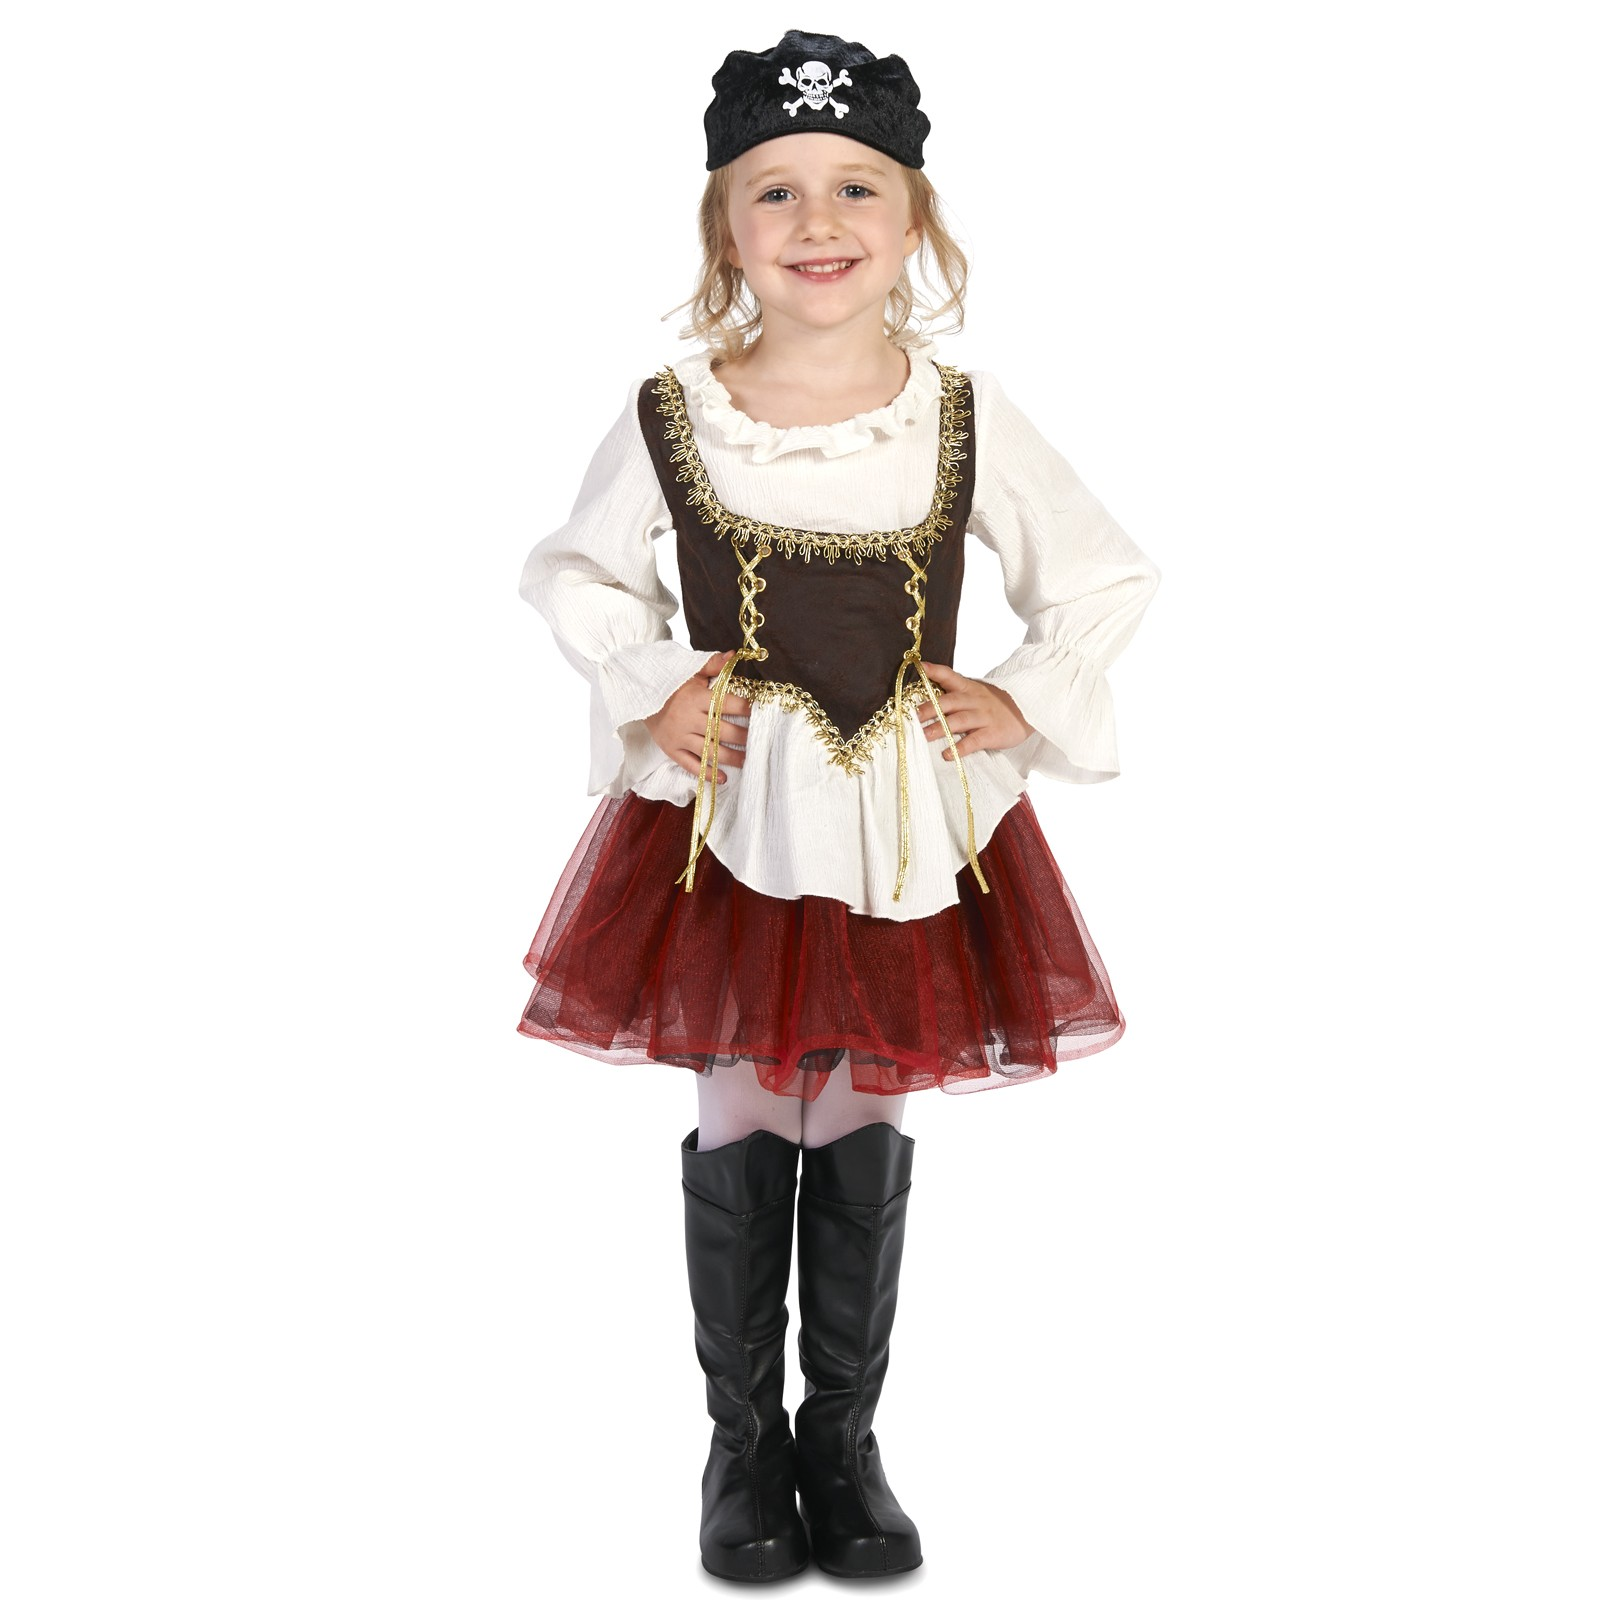 Pirate Tutu Girl Costume by DreamWeaversCostumer